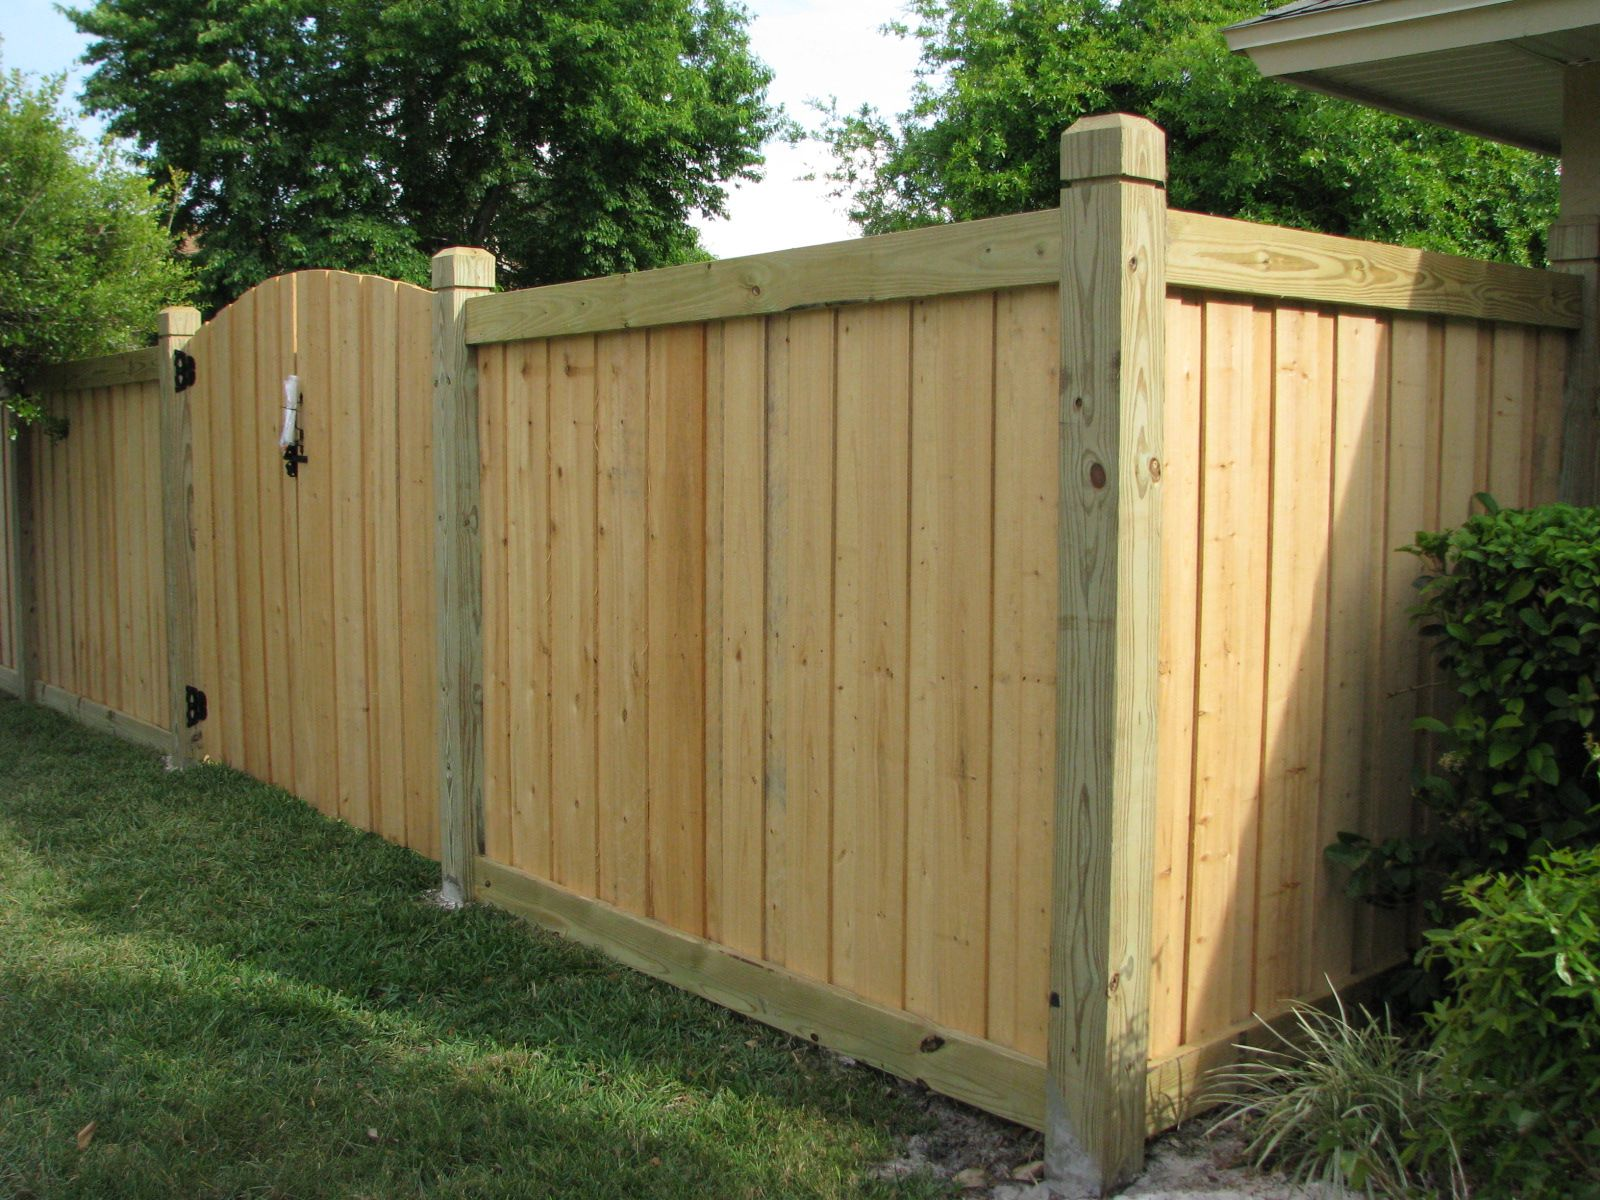 Beautiful New Capped Wood Fence Gate Design By Mossy Oak Fence